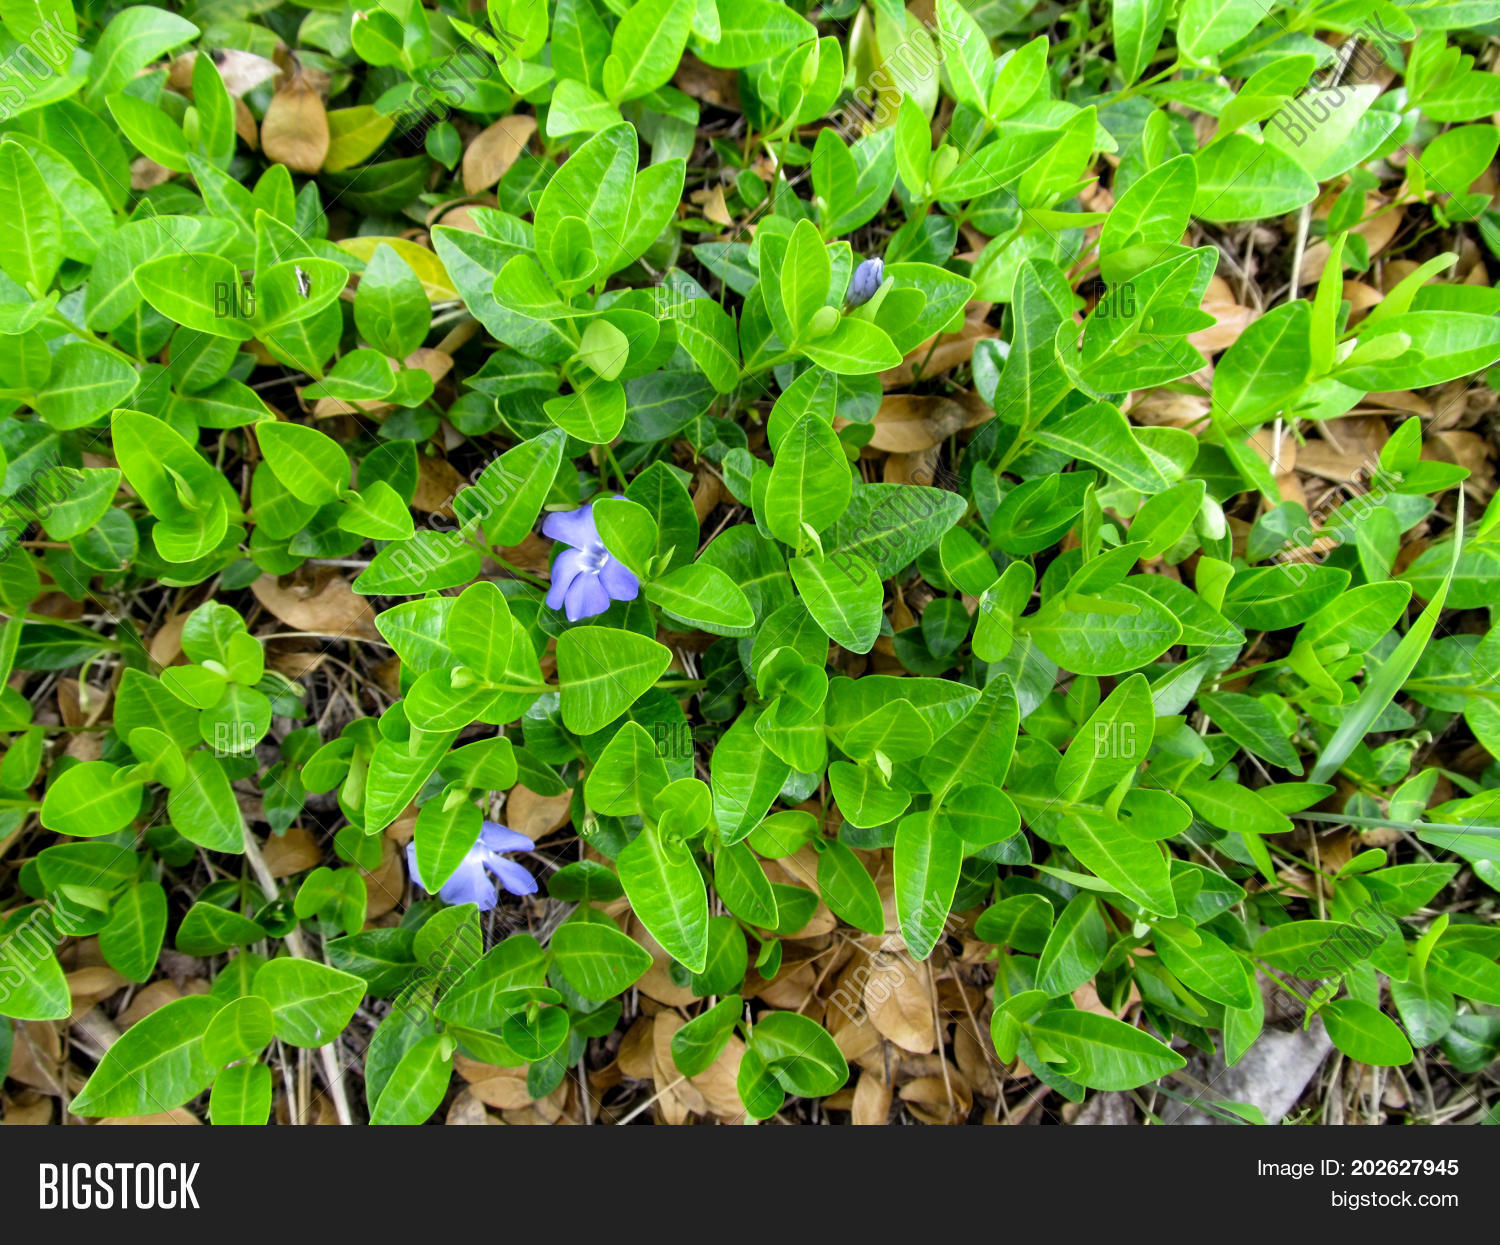 Floral green juicy image photo free trial bigstock floral green juicy background of a creeping plant of the vinca minor with two blue flowers izmirmasajfo